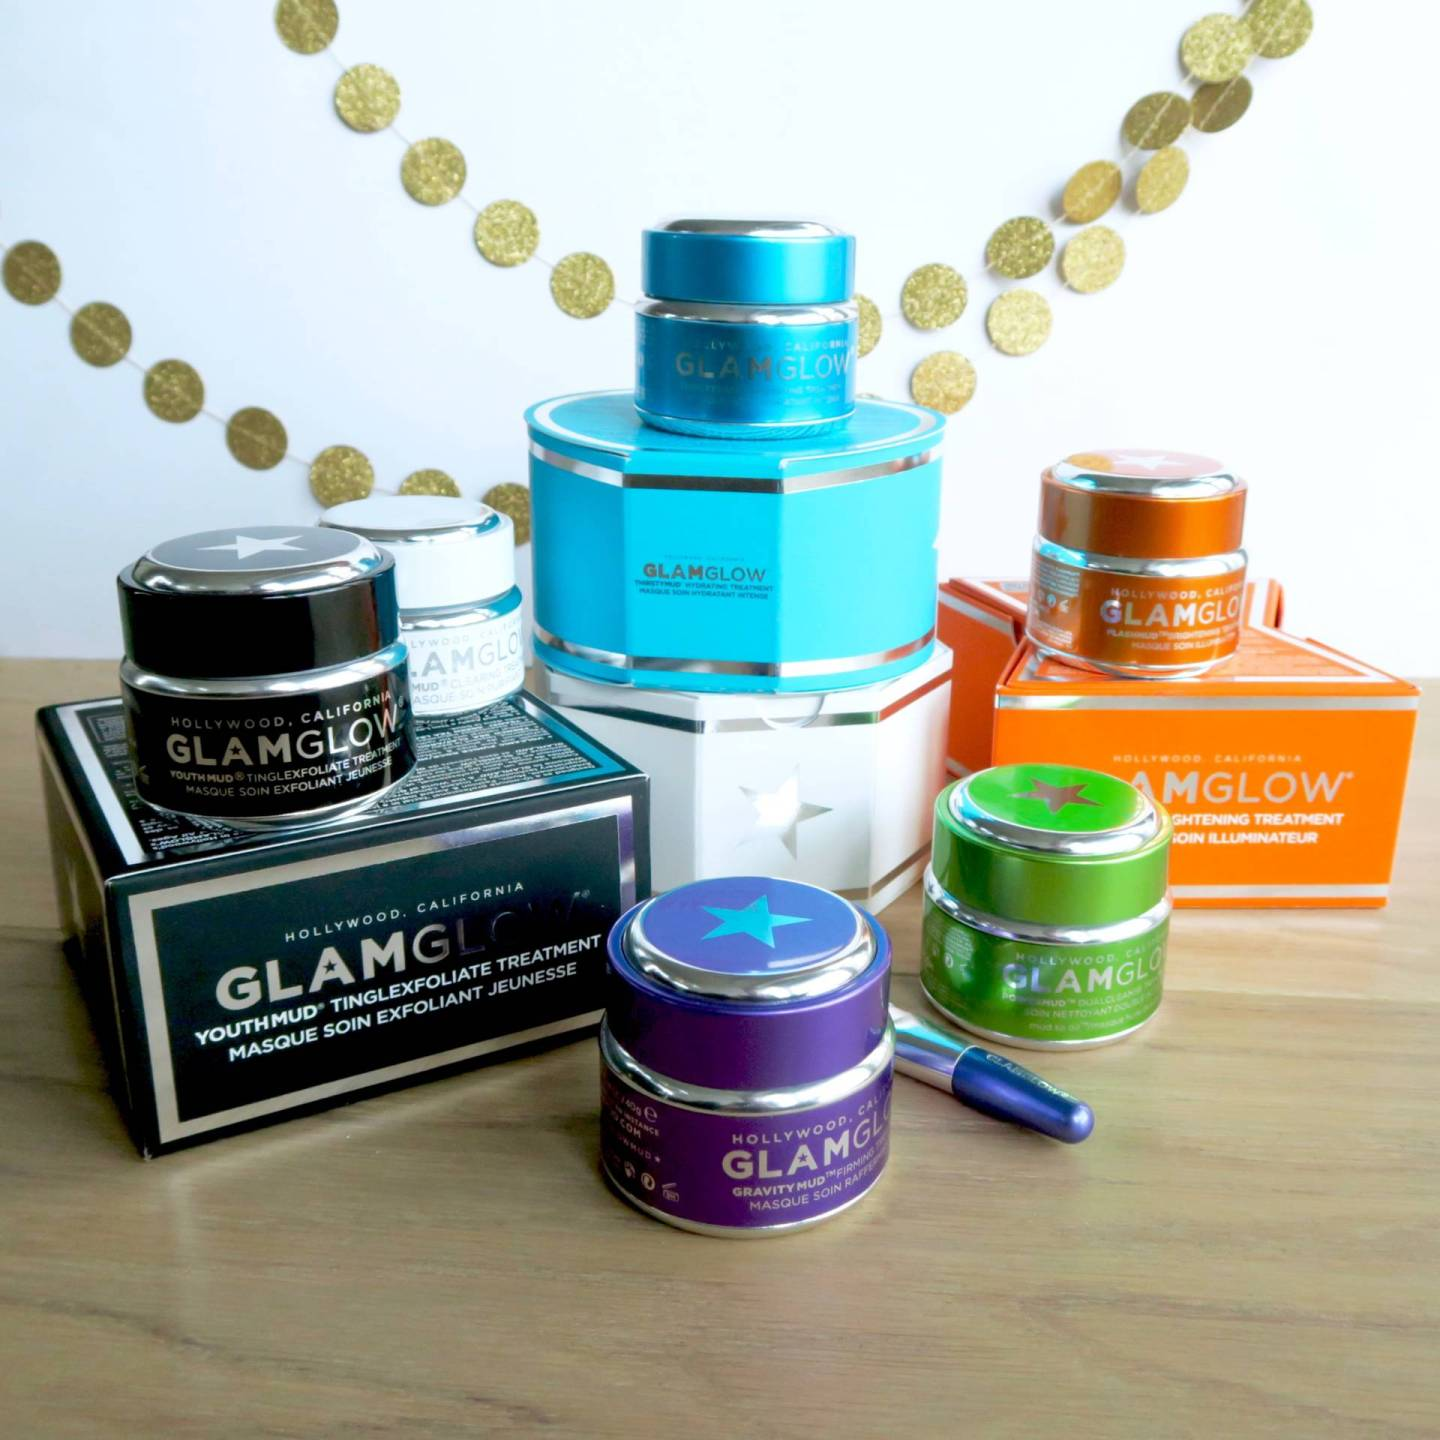 GLAMGLOW Face Mask Review